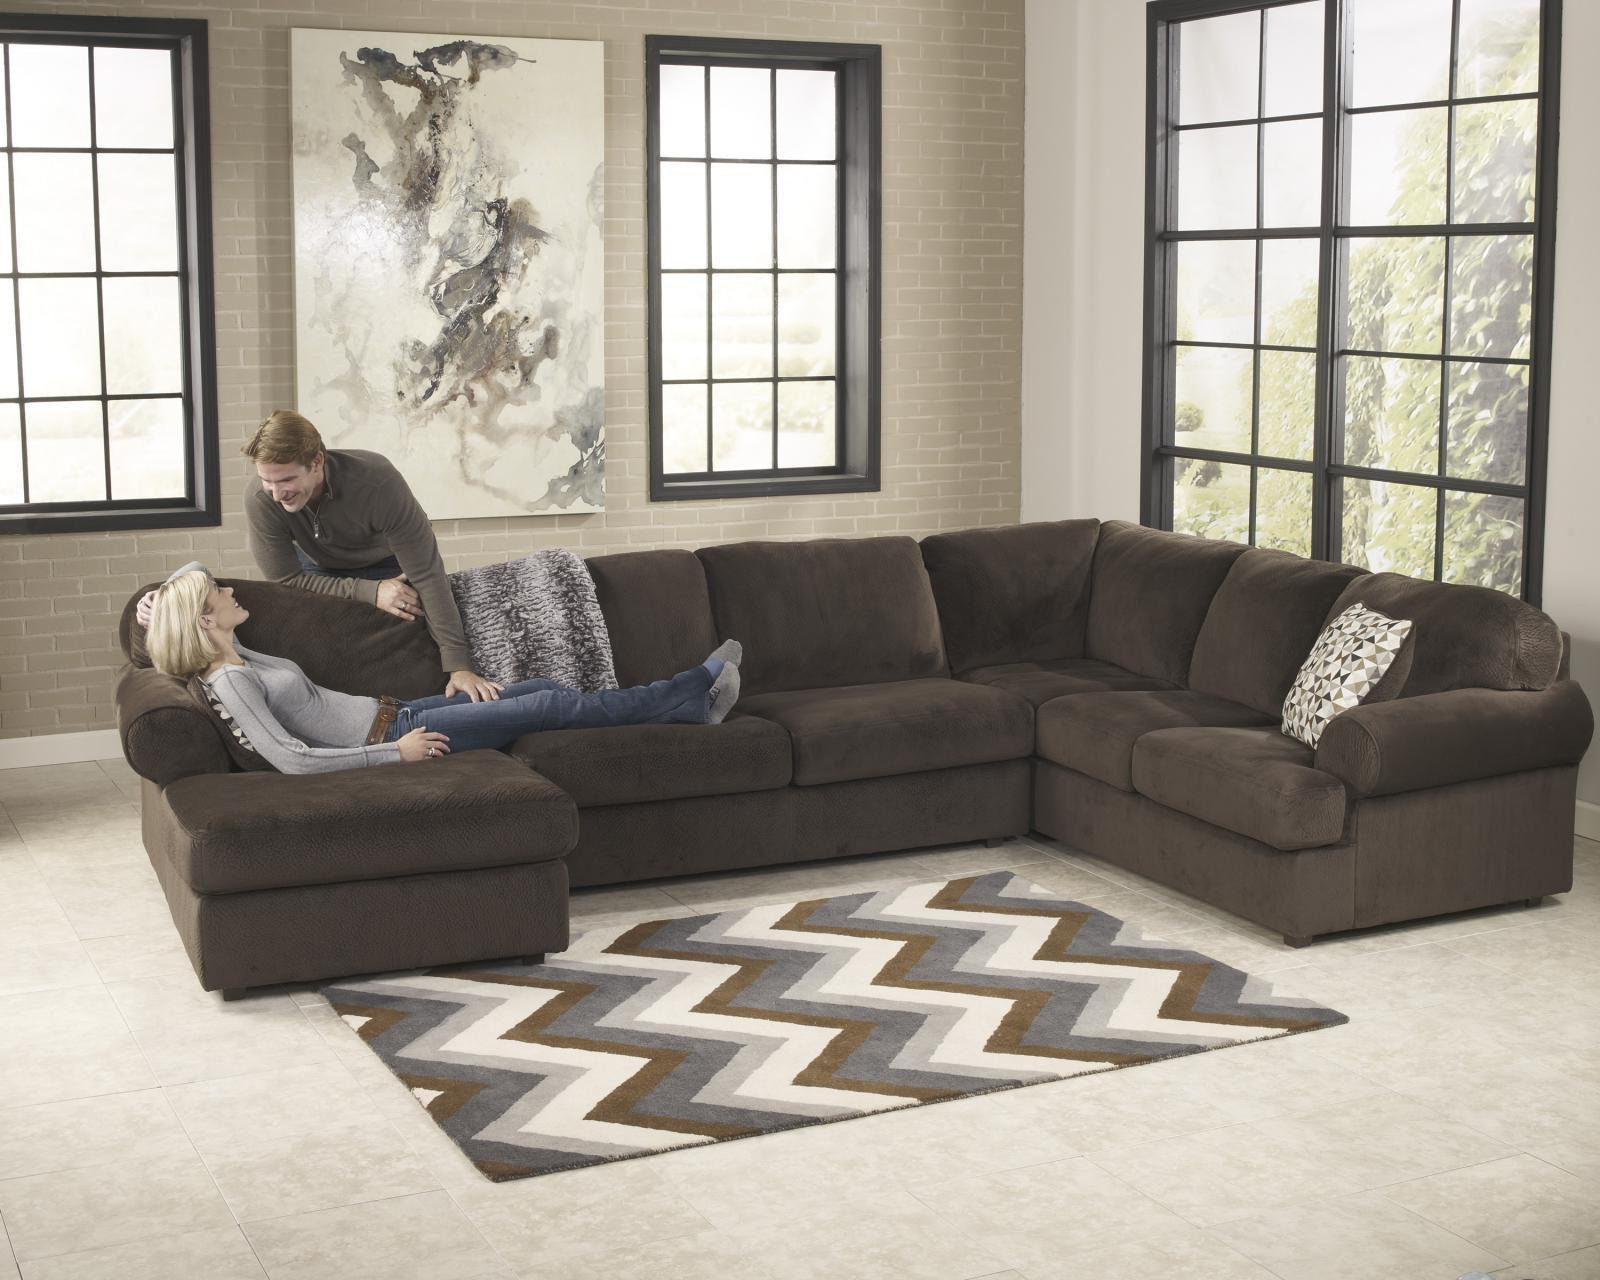 Ashley Jessa Place Living Room Sectional 3pcs in Chocolate Right Facing